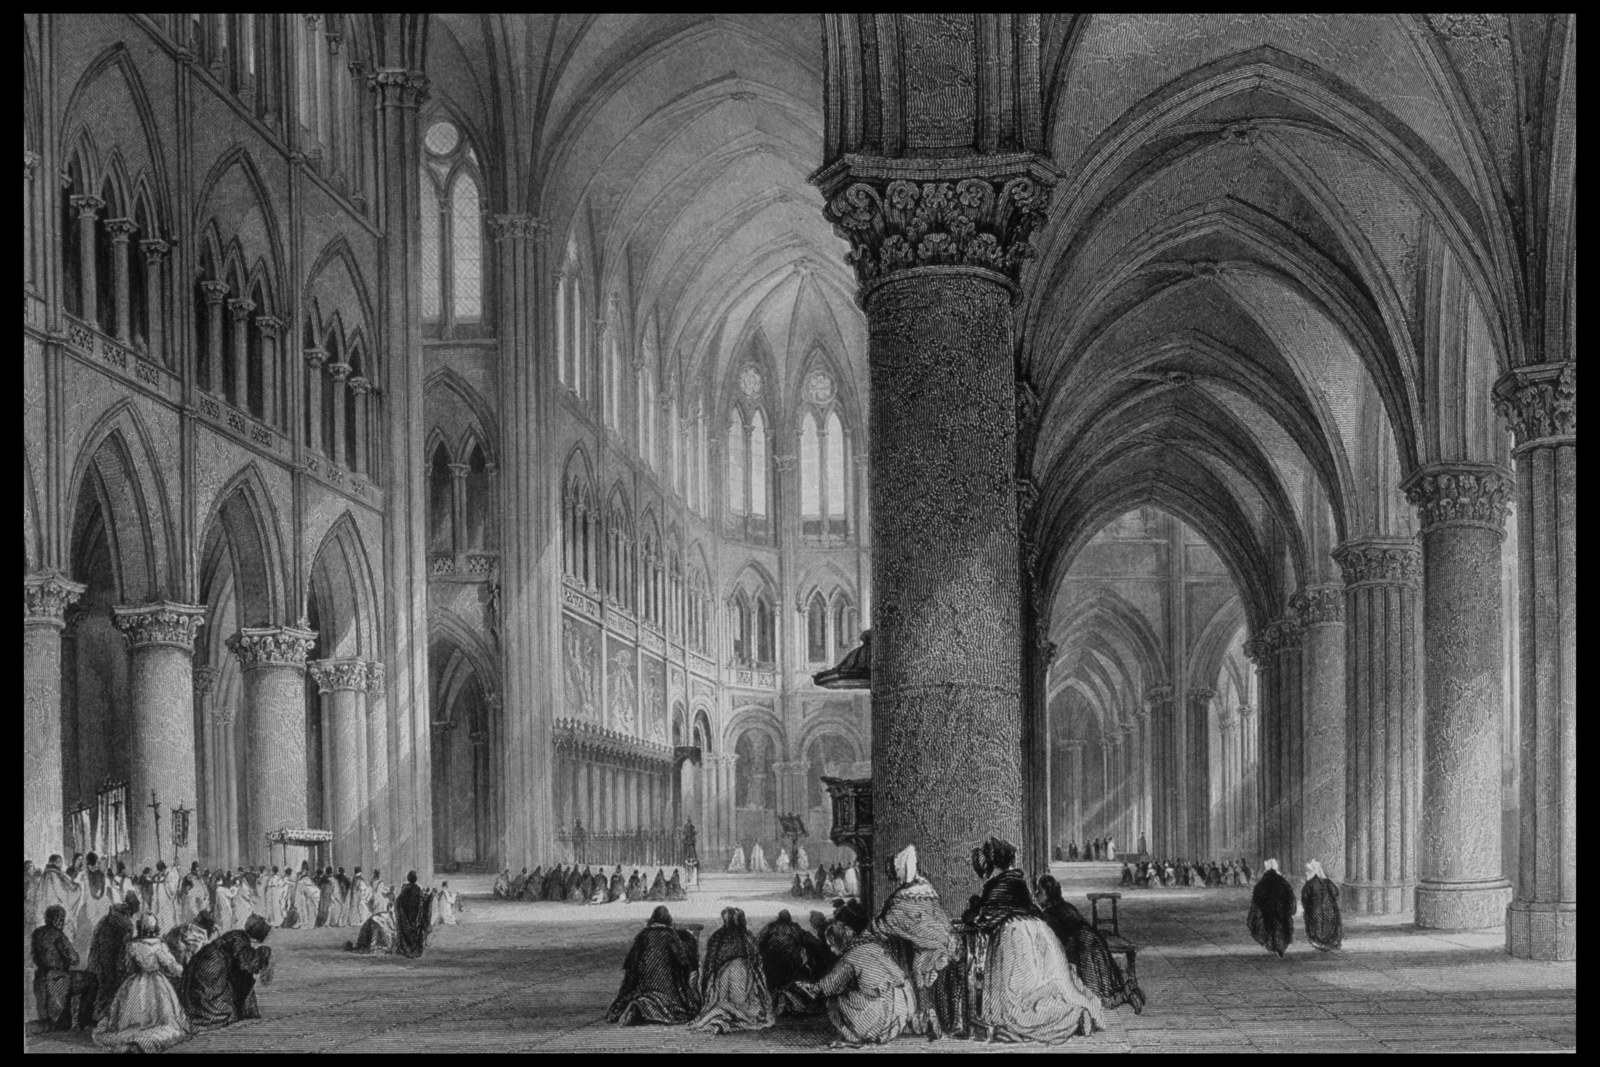 Interior of Notre Dame Cathedral as drawn by Thomas Allom from France Illustrated, 1845.